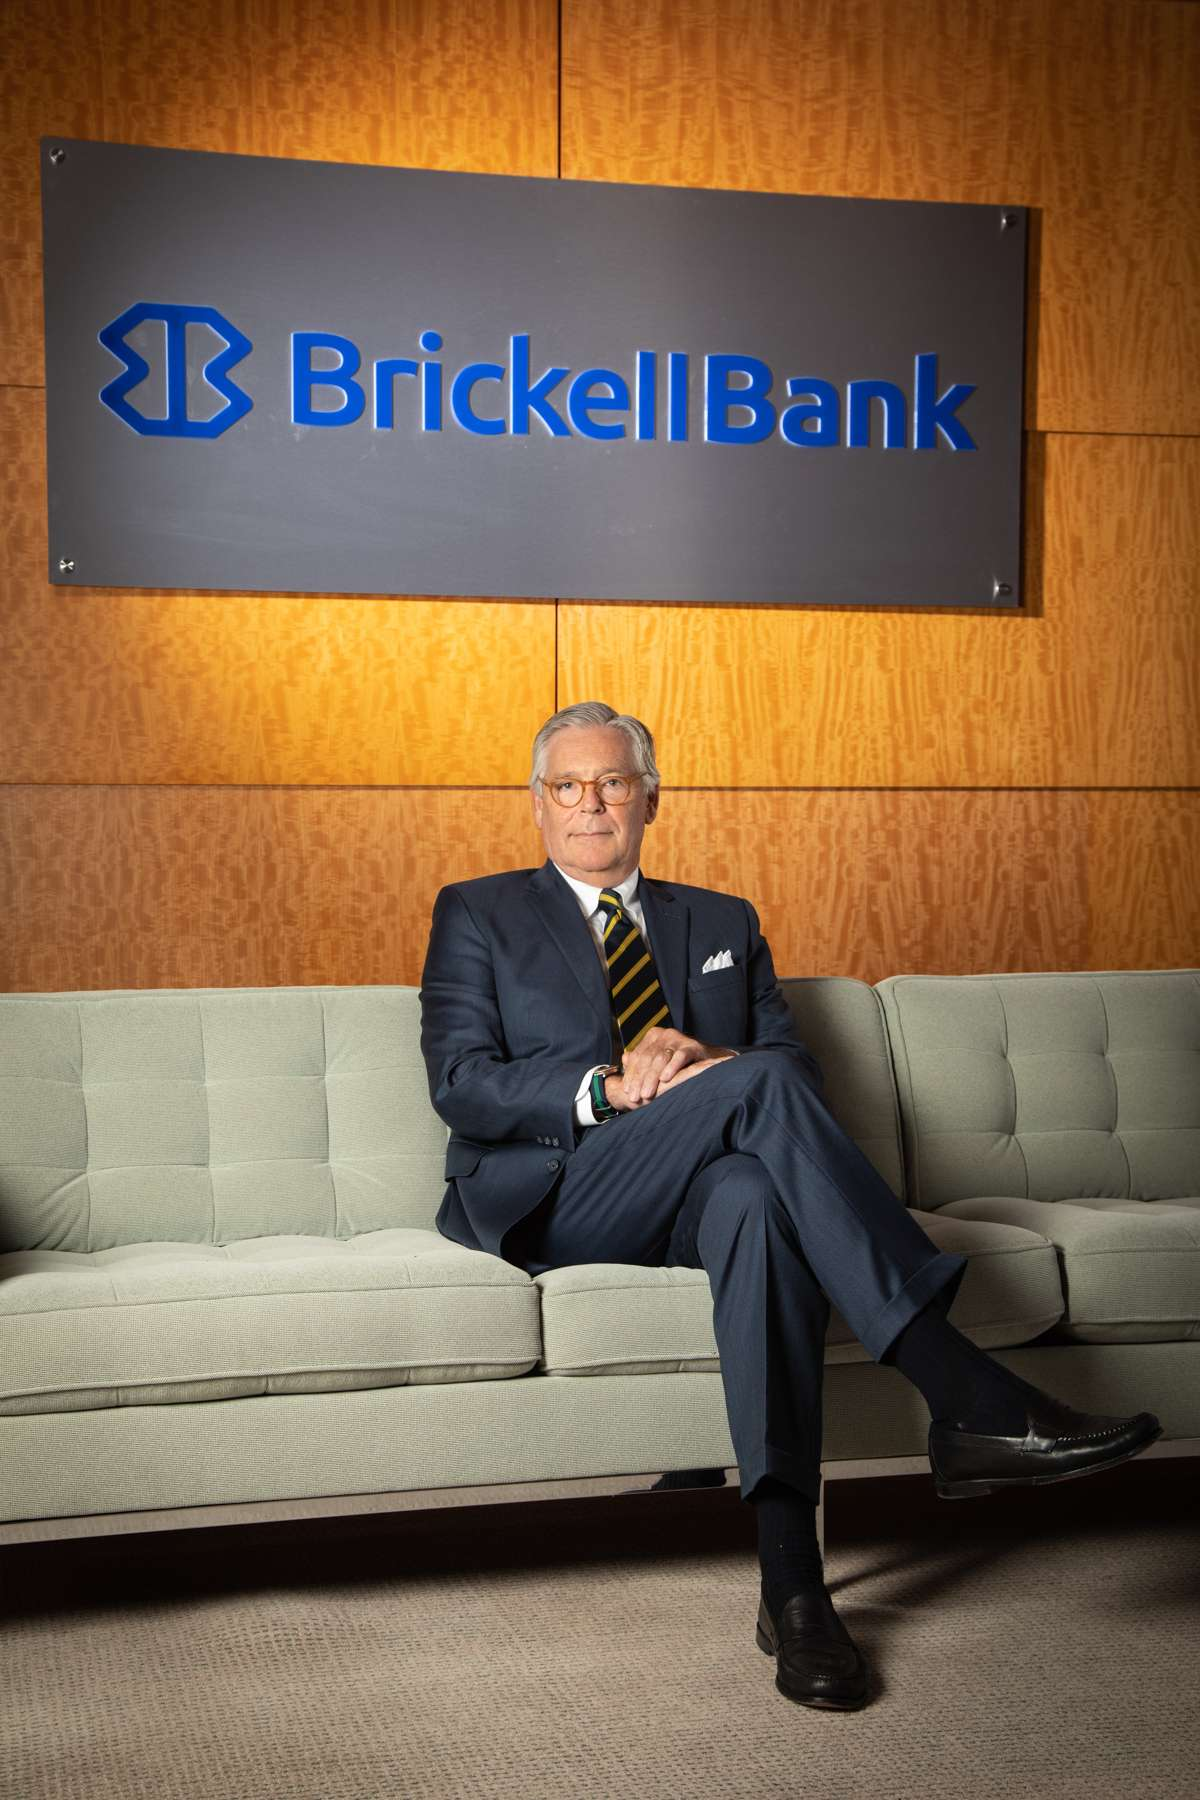 Brickell Bank